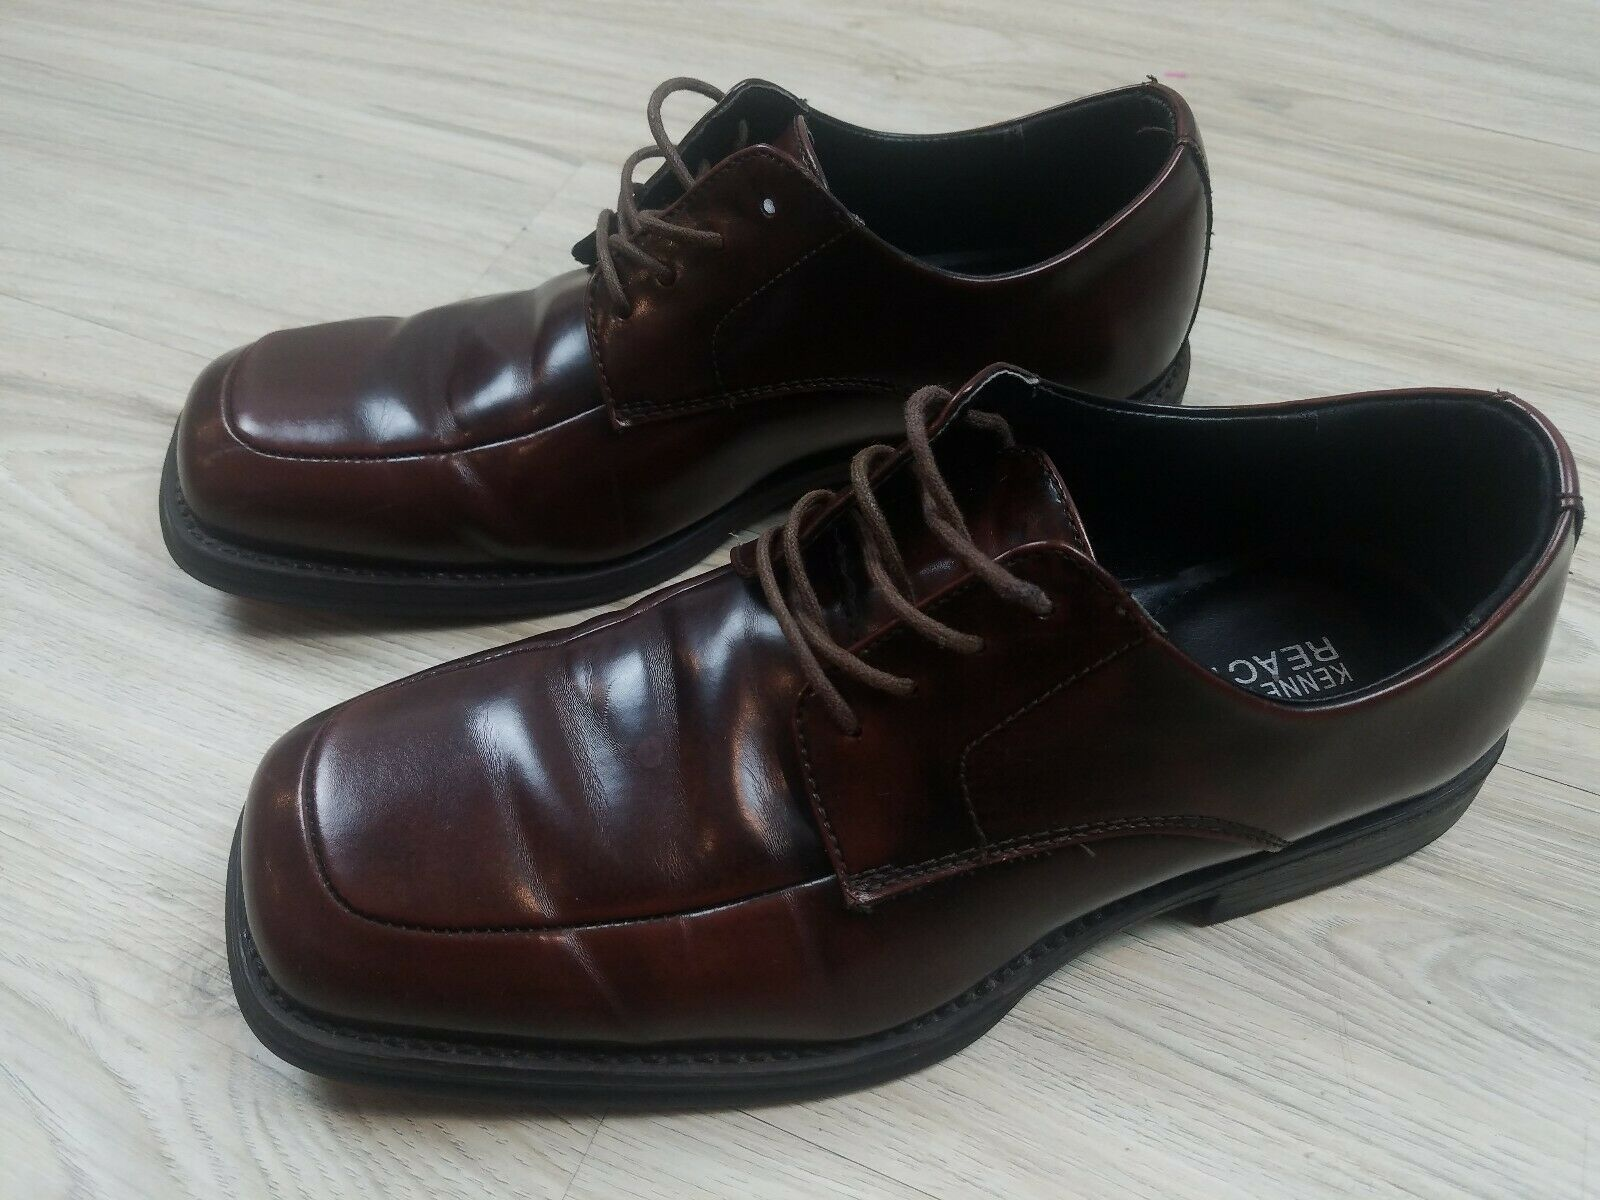 Kenneth Cole Reaction Men's Dress Shoes Size 9 1/2 Brown Man Made W05354